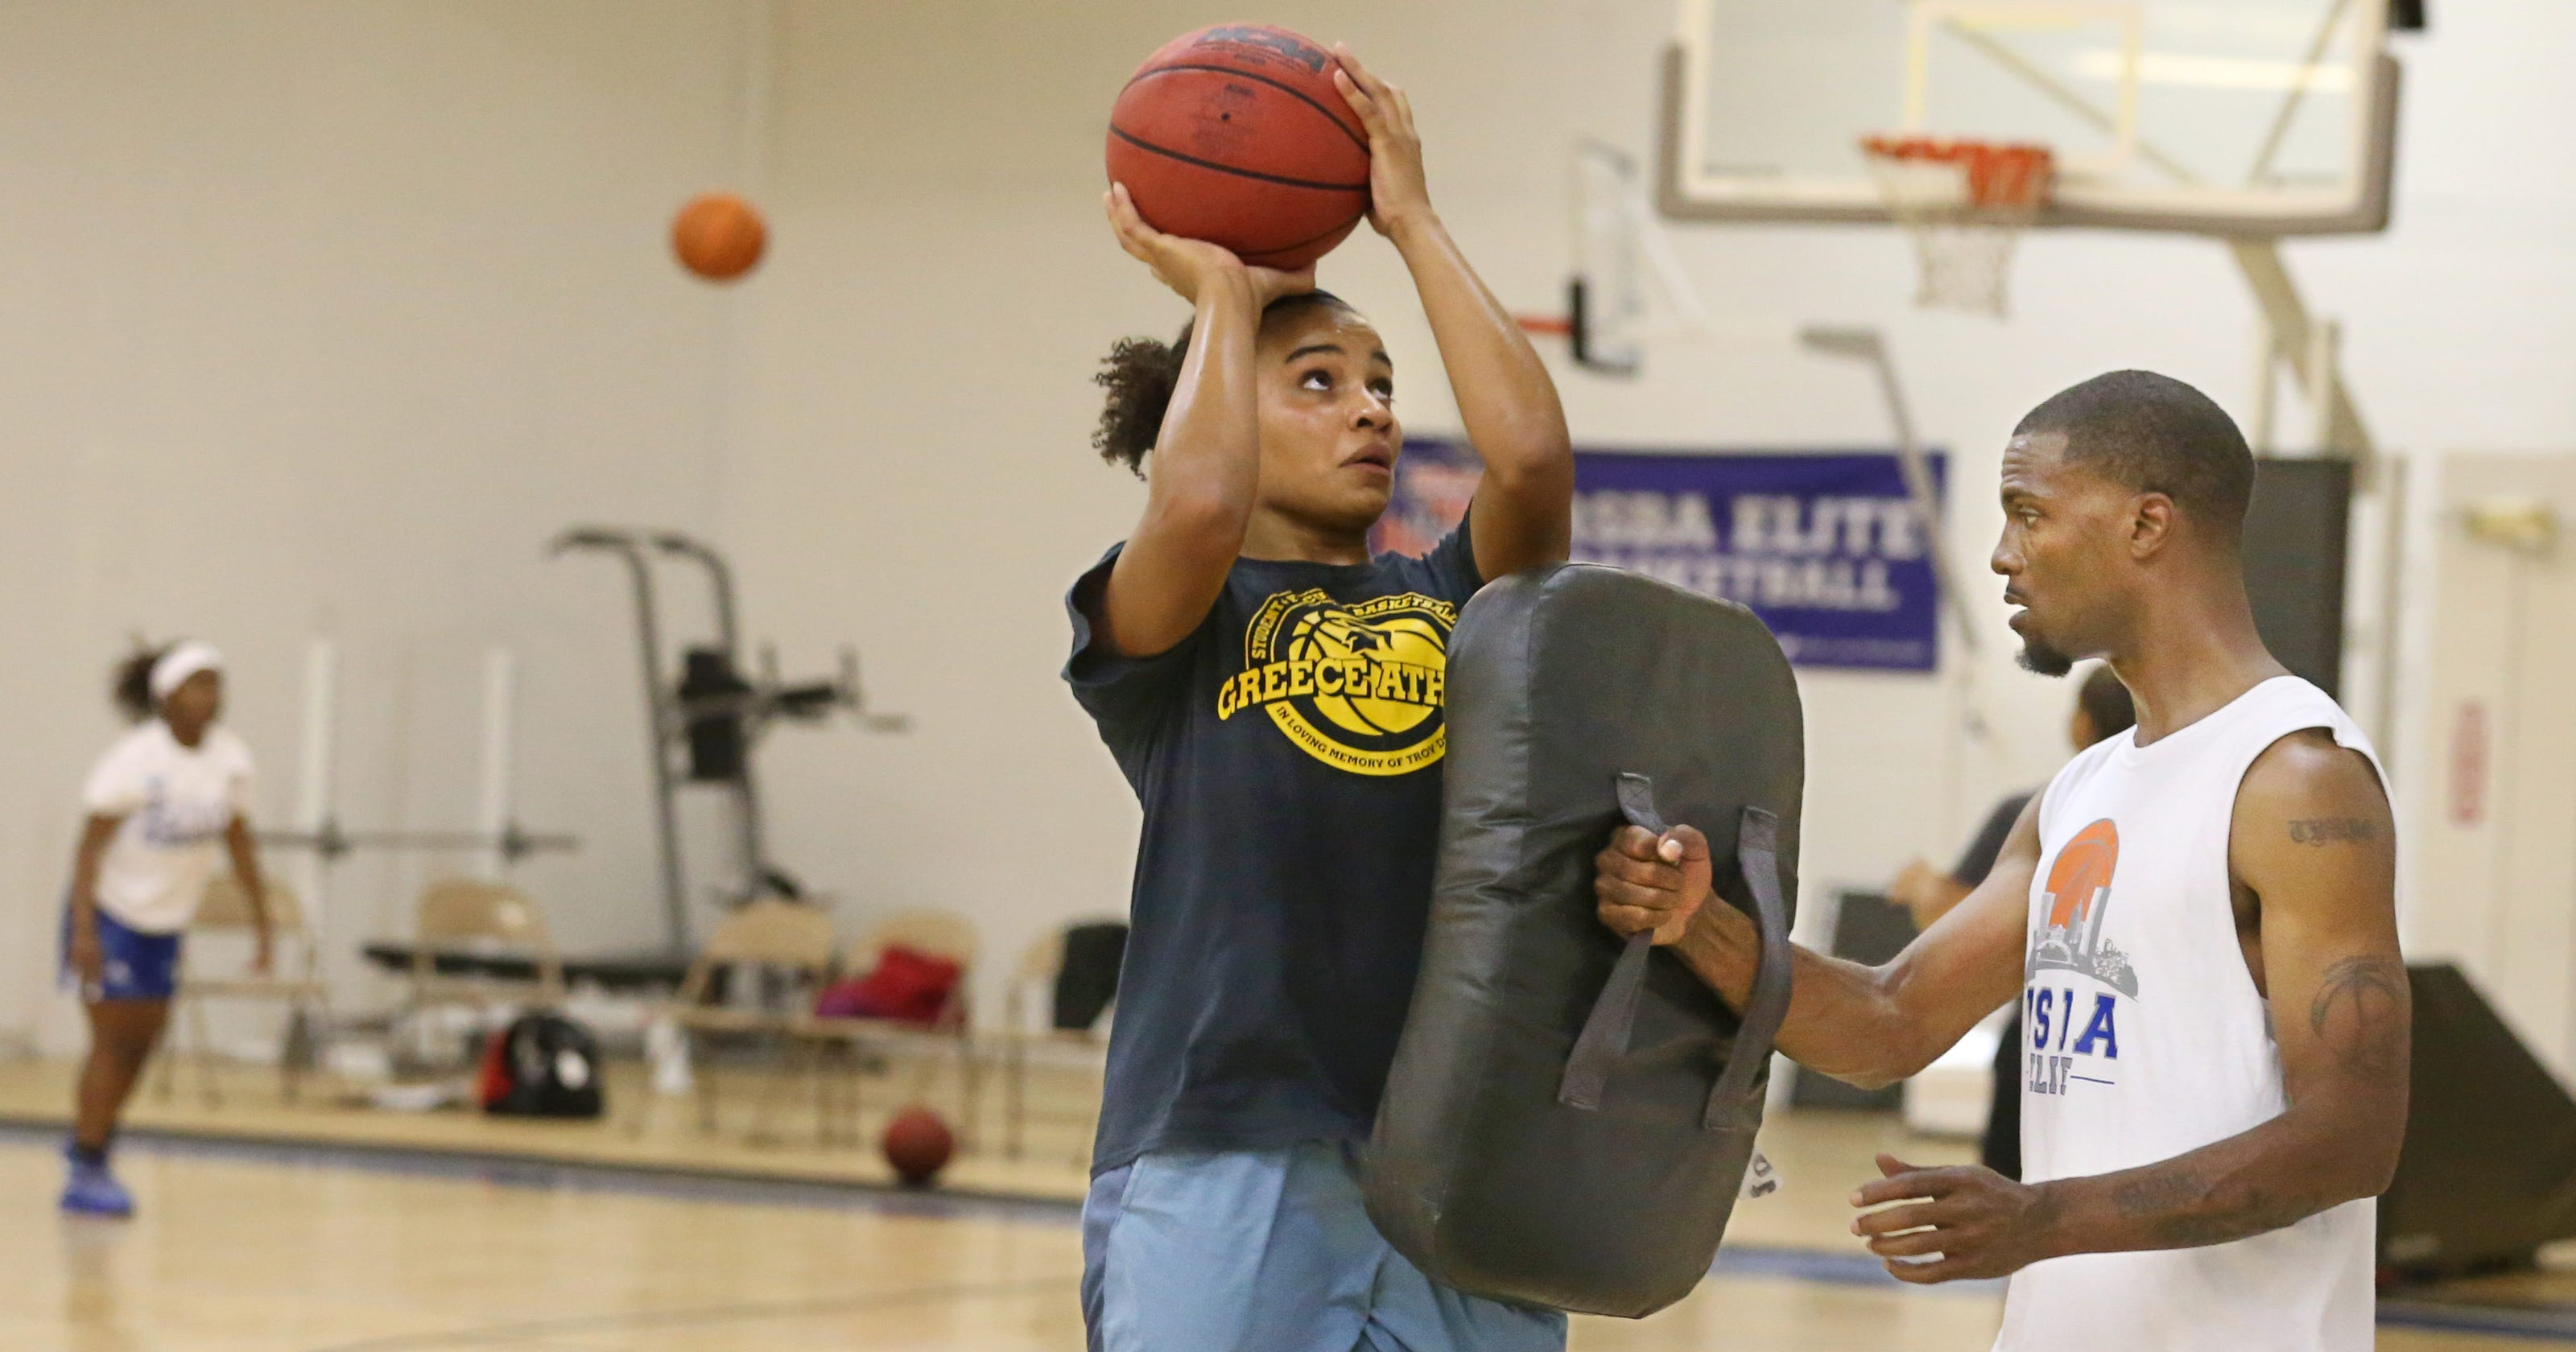 AAU Basketball Provides Opportunities Obstacles For Players Families